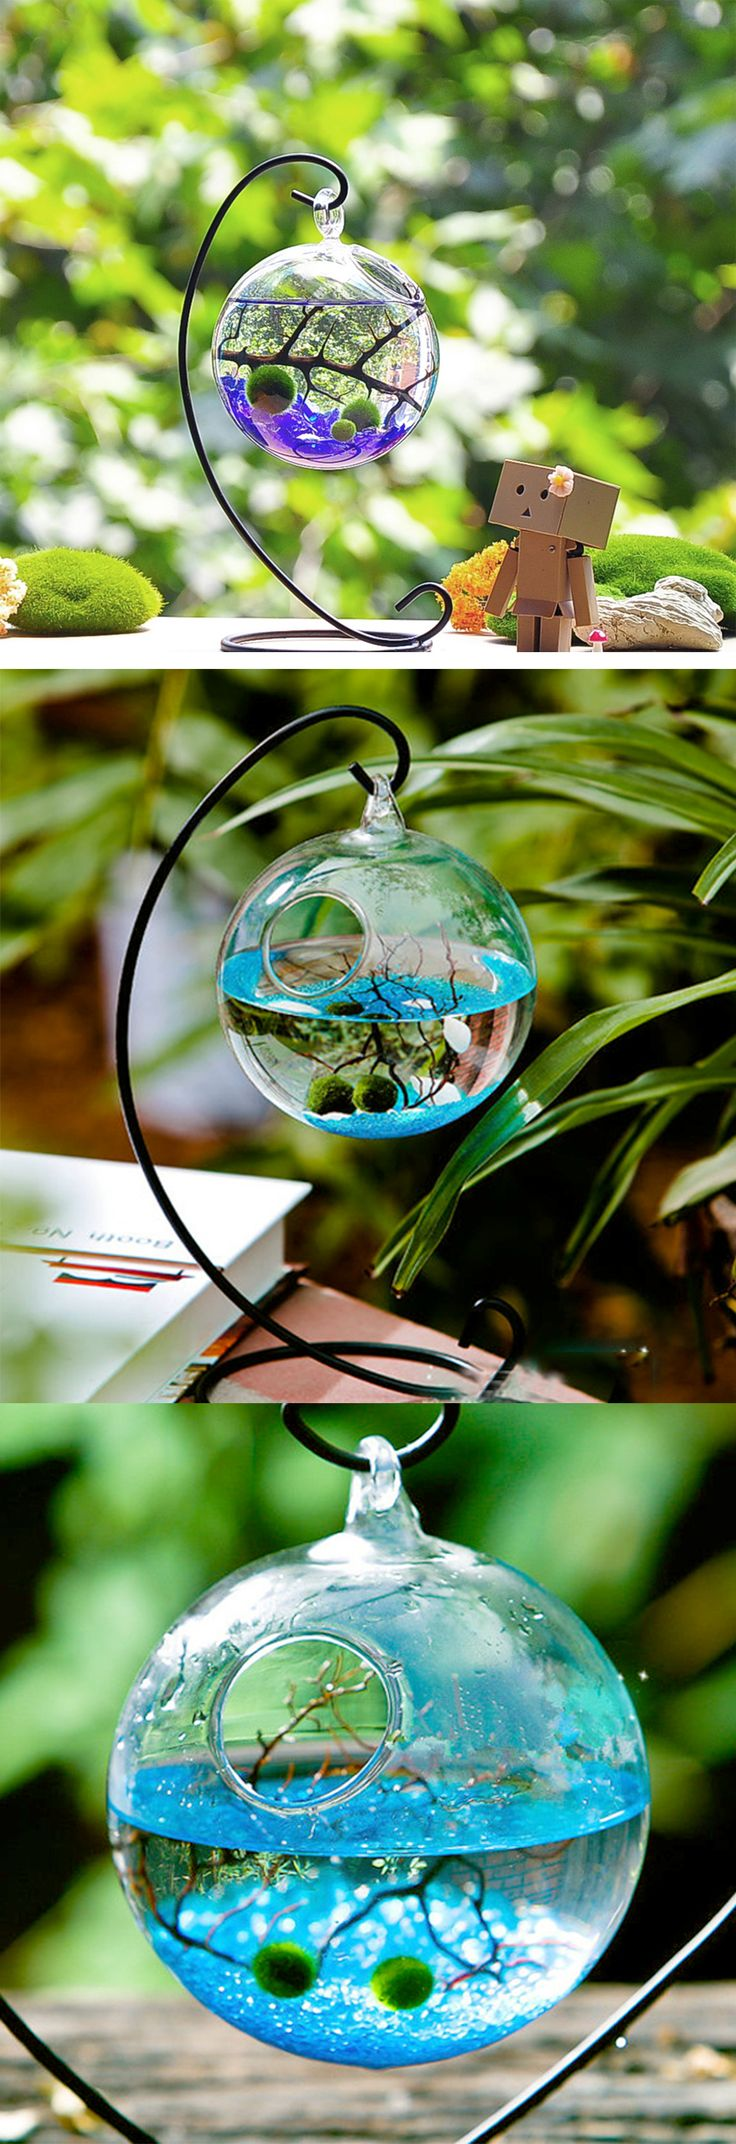 #Marimo #Terrarium kit comes with two easy-to-care-for algae balls and…